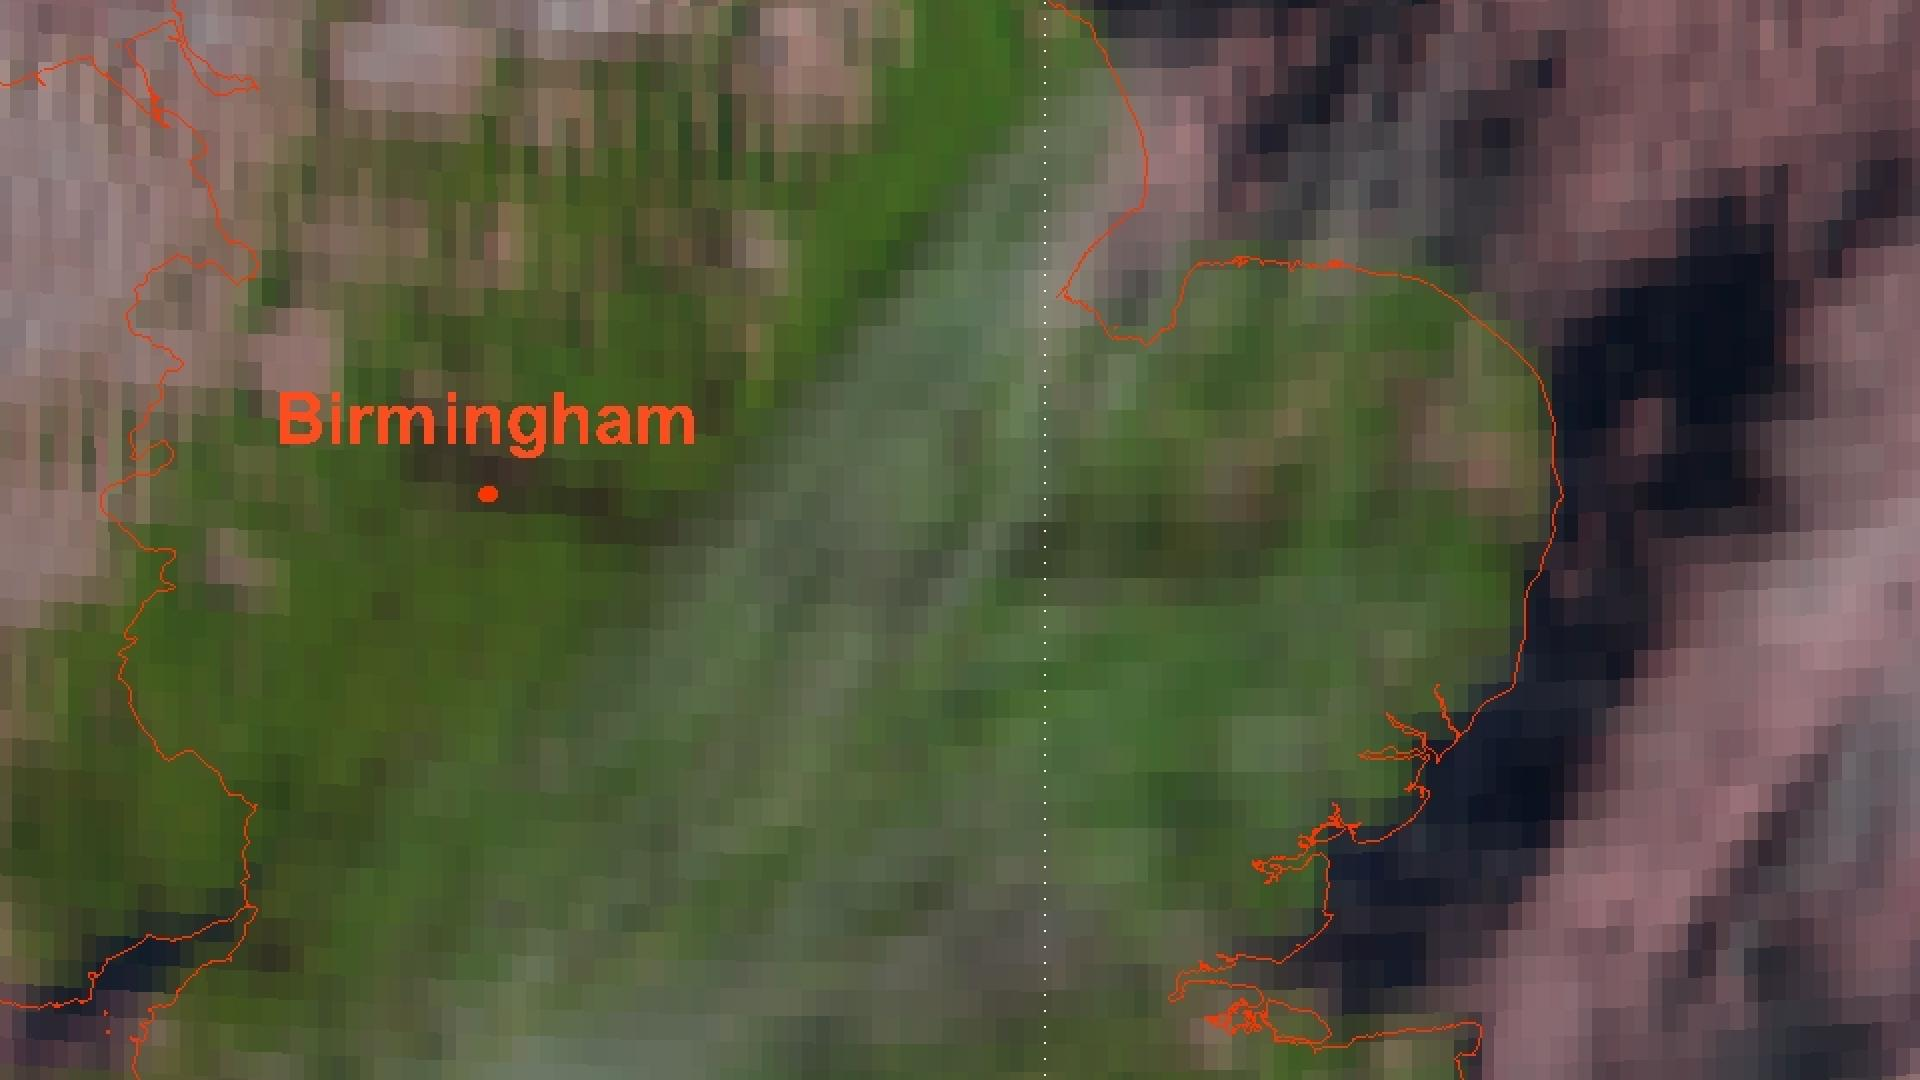 Smoke from major fire in the UK